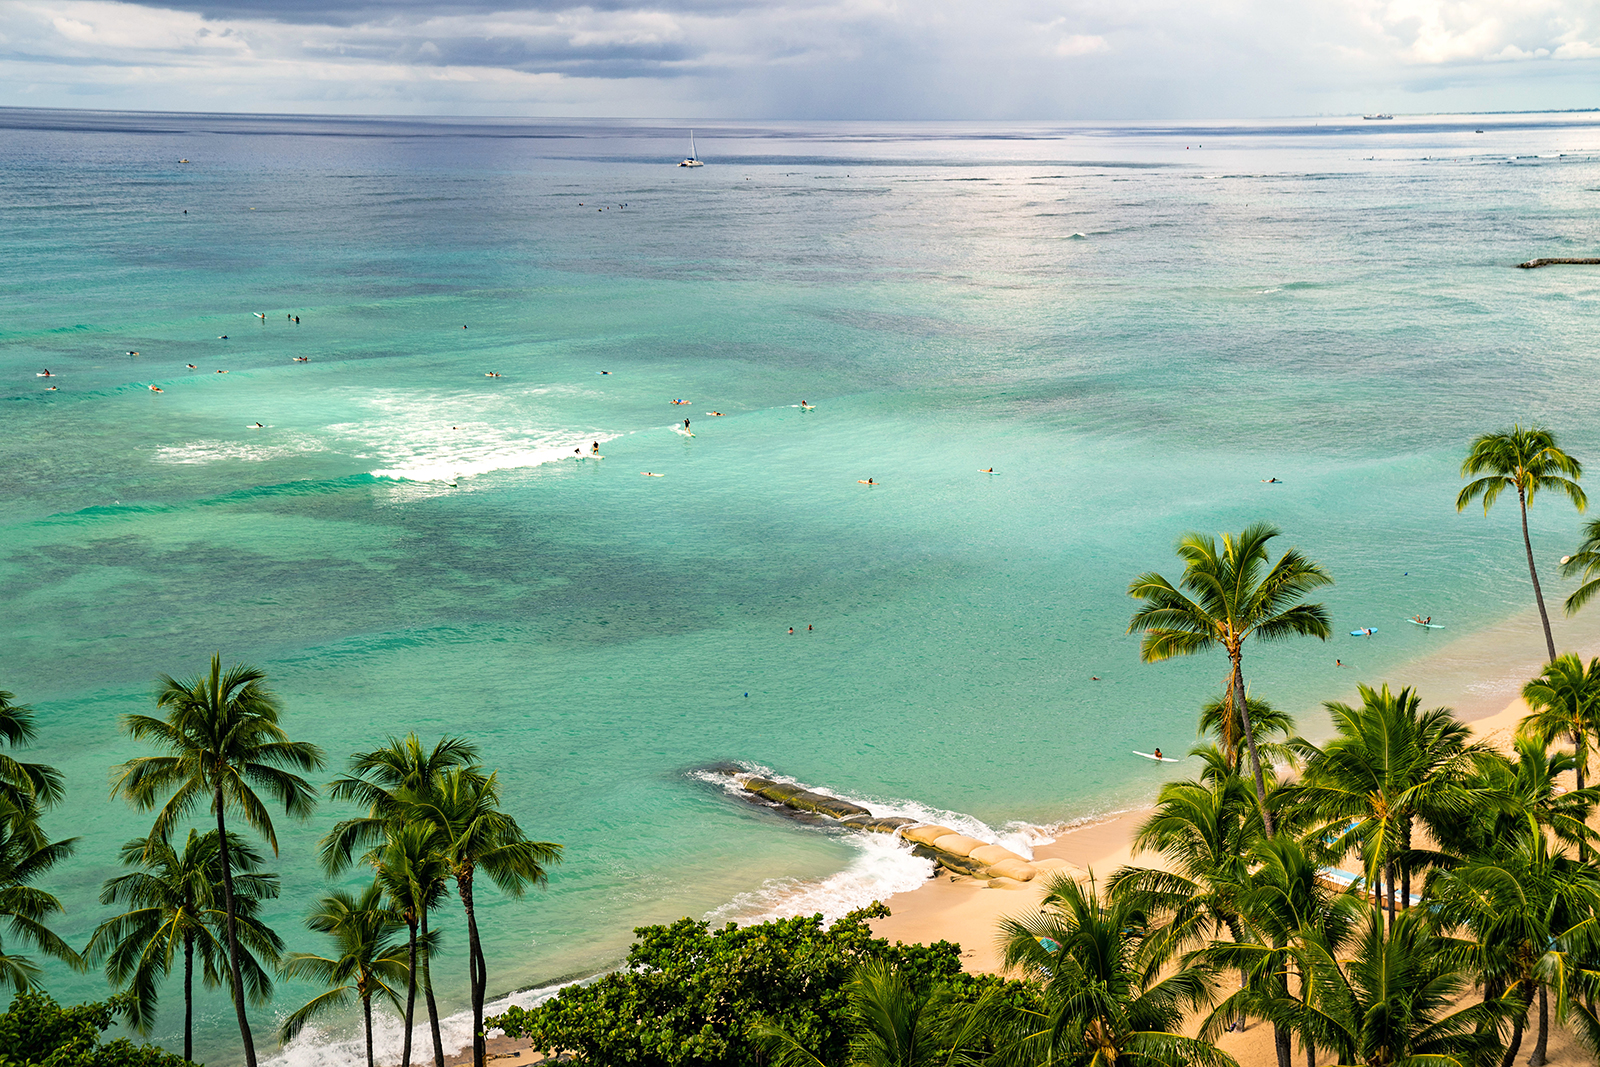 The southern shore of the island of Oahu is seen on October 22, in Honolulu.